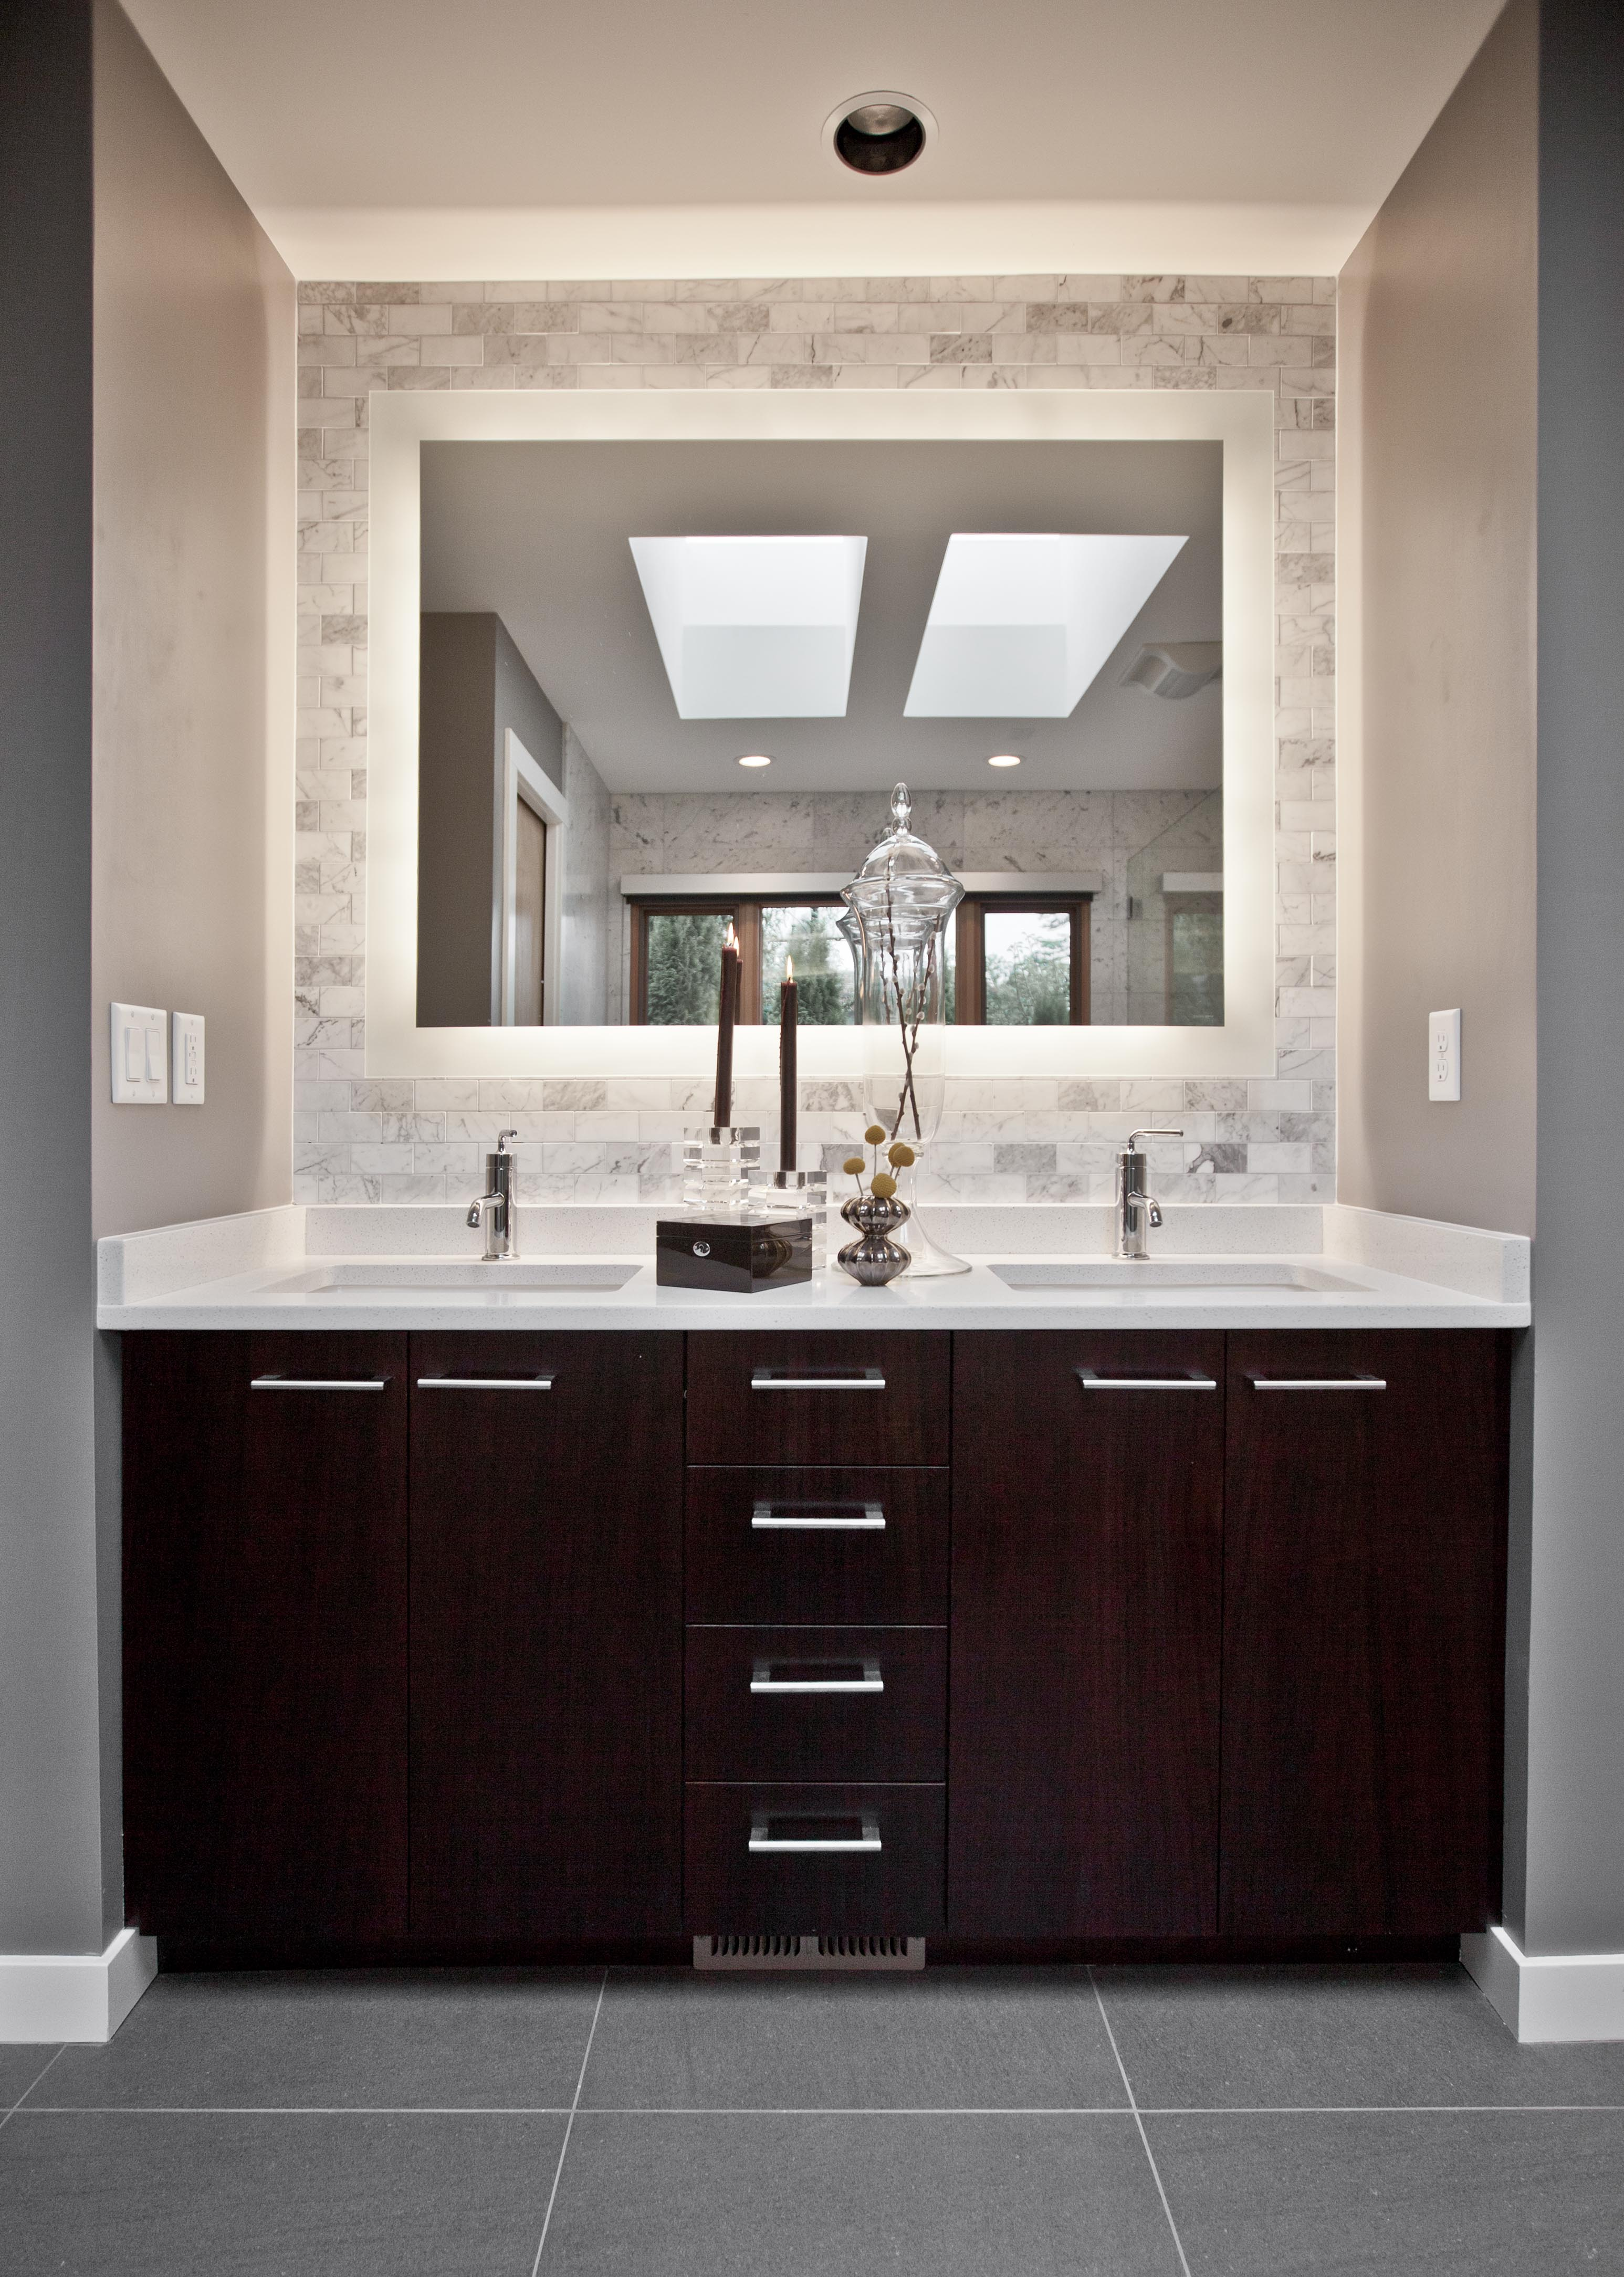 Custom bathroom vanity cabinets with white counter top